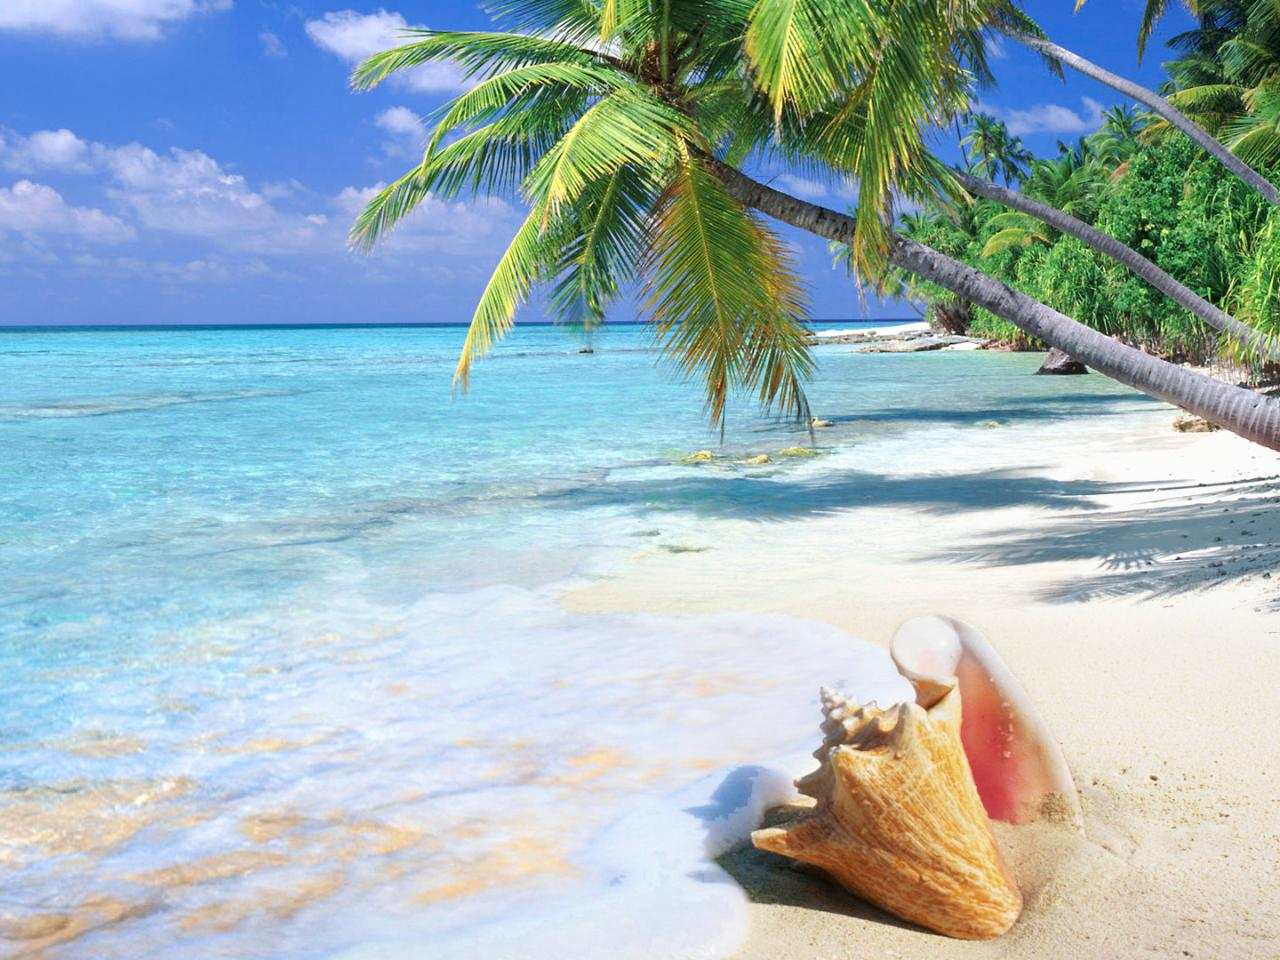 hd wallpaper tropical beach shell   Background Wallpapers 1280x960